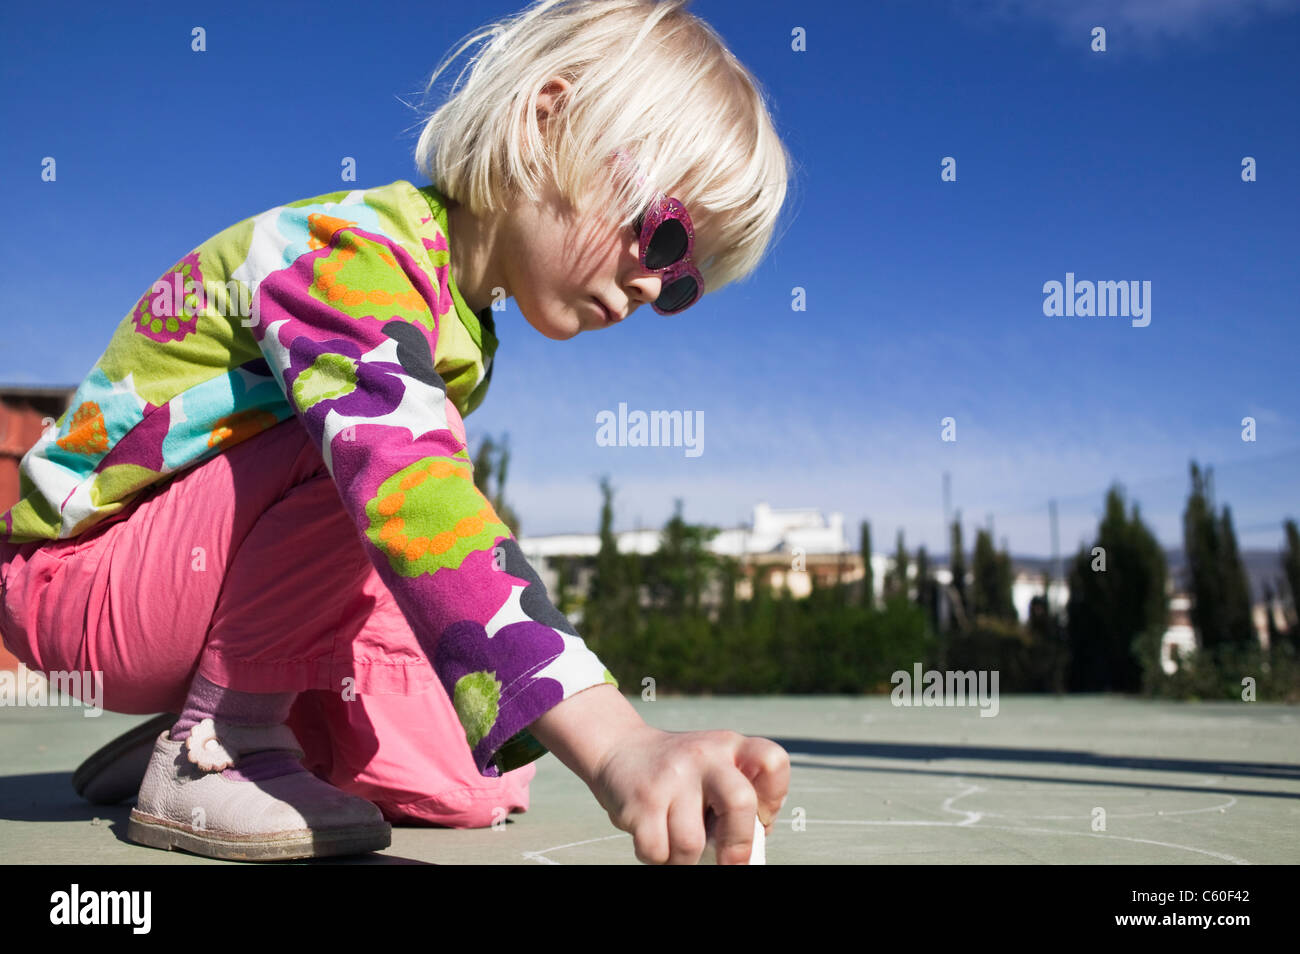 Girl drawing with sidewalk chalk - Stock Image